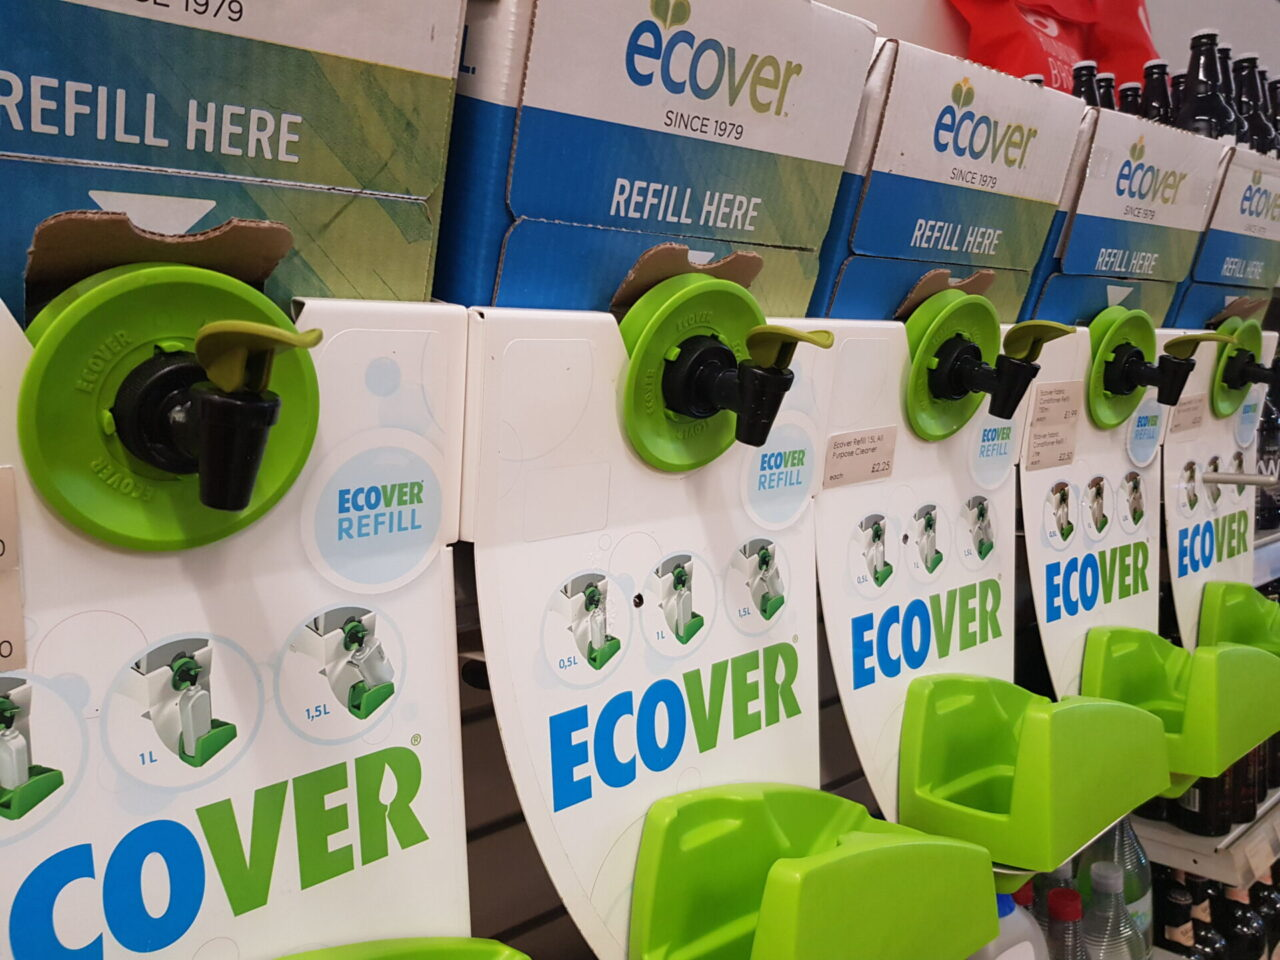 Ecover Refill Station